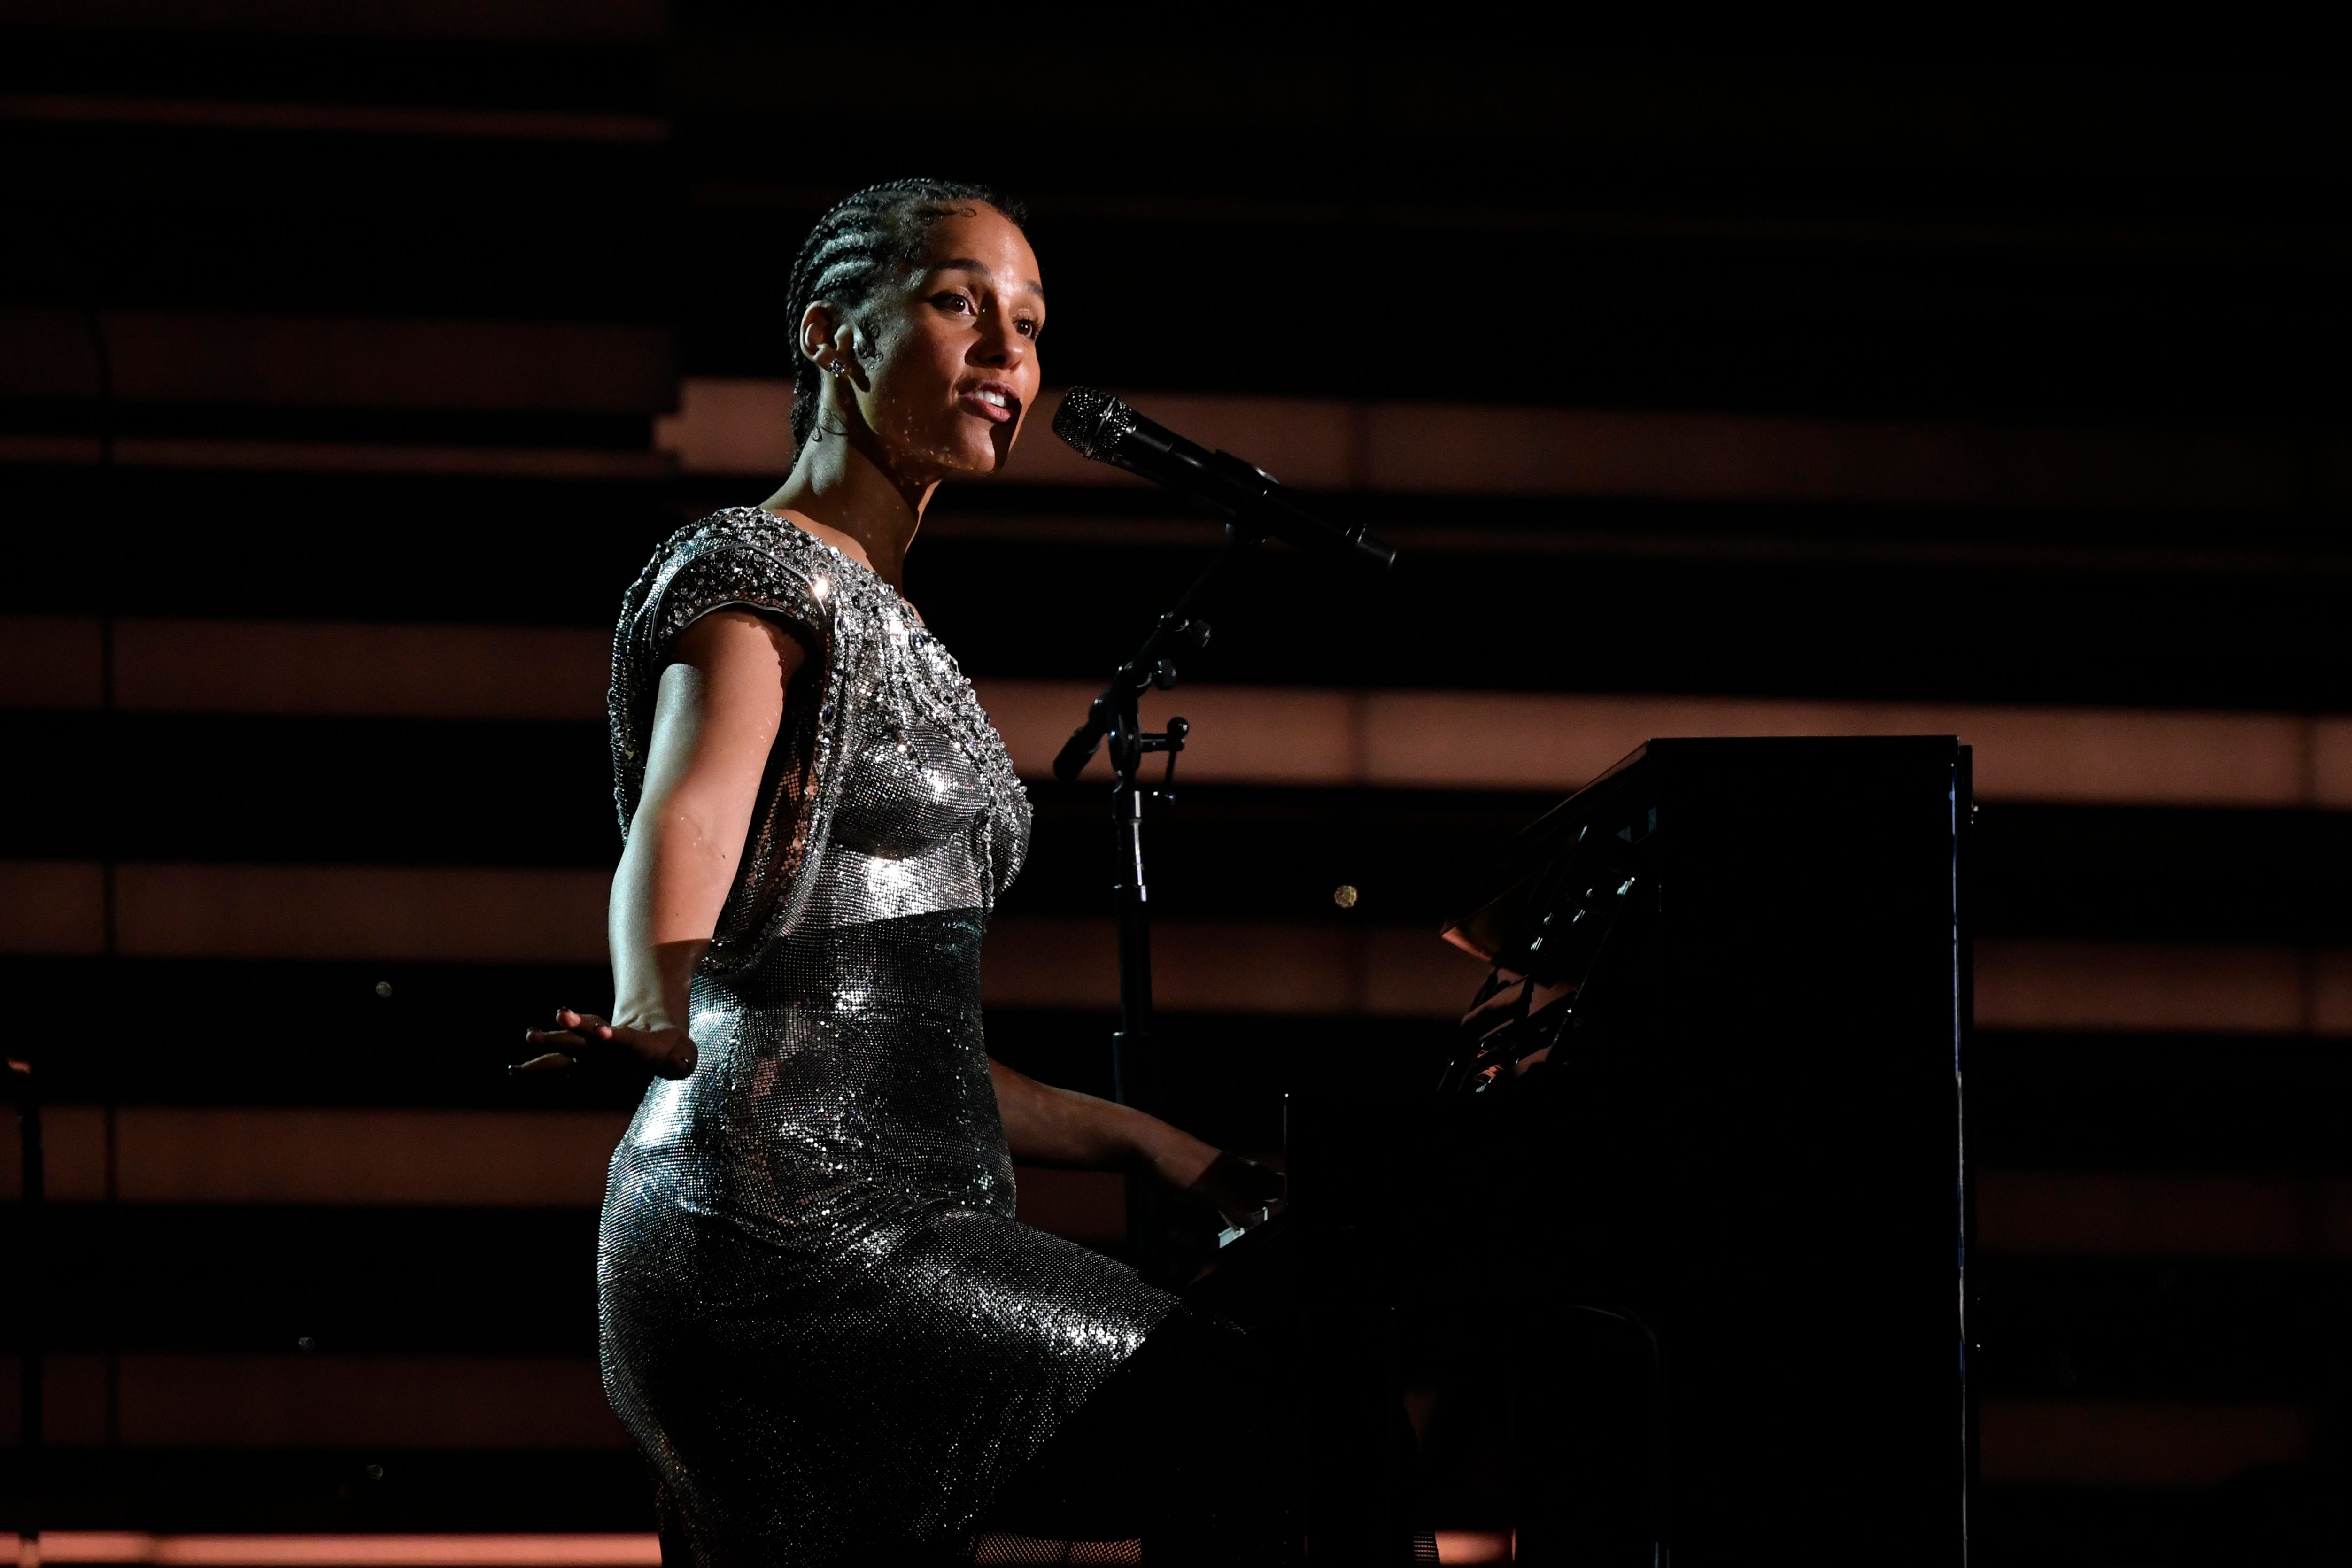 Be good to each other : Alicia Keys discusses new memoir, shares hopeful messages amid coronavirus